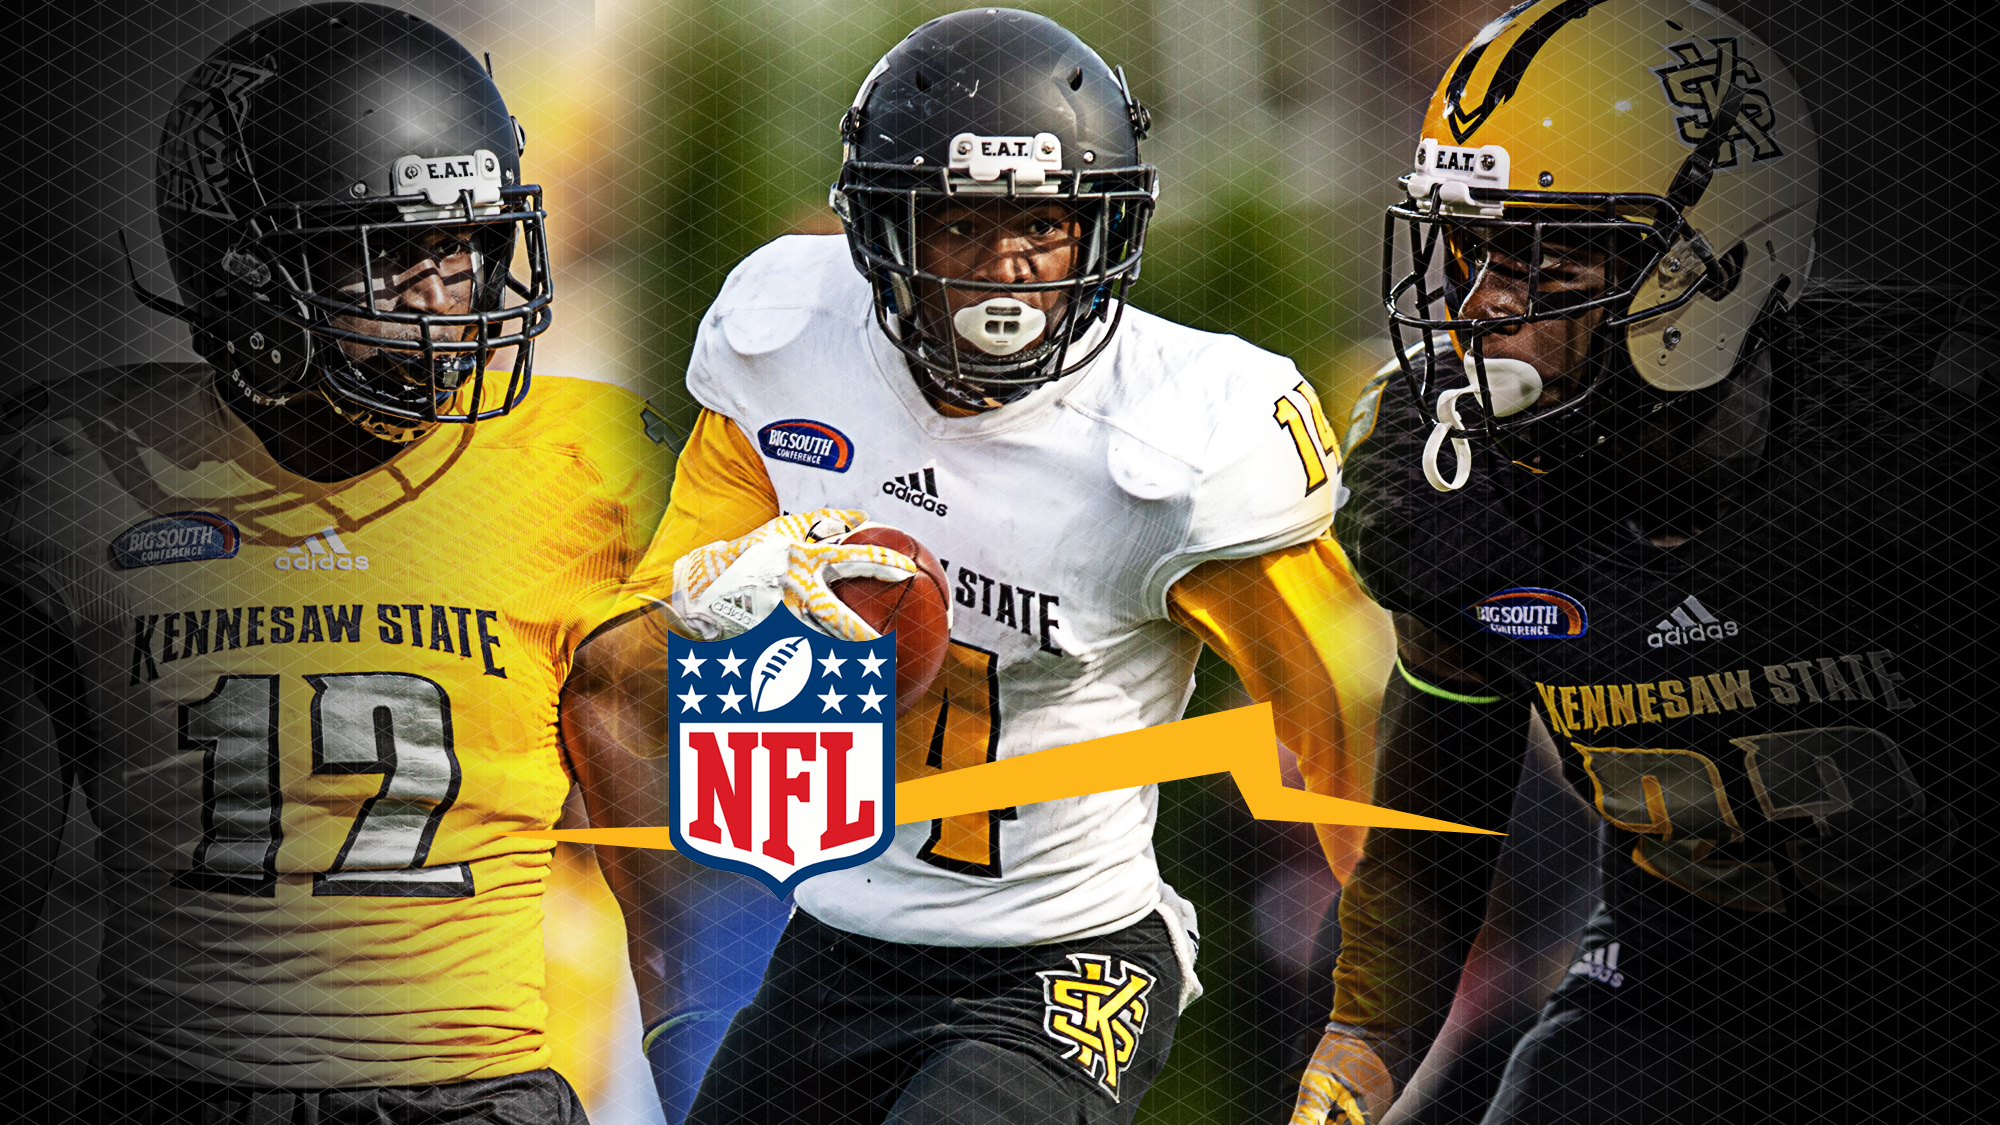 Kennesaw State Football Schedule 2020 Kennesaw State Football Schedule | Examples and Forms